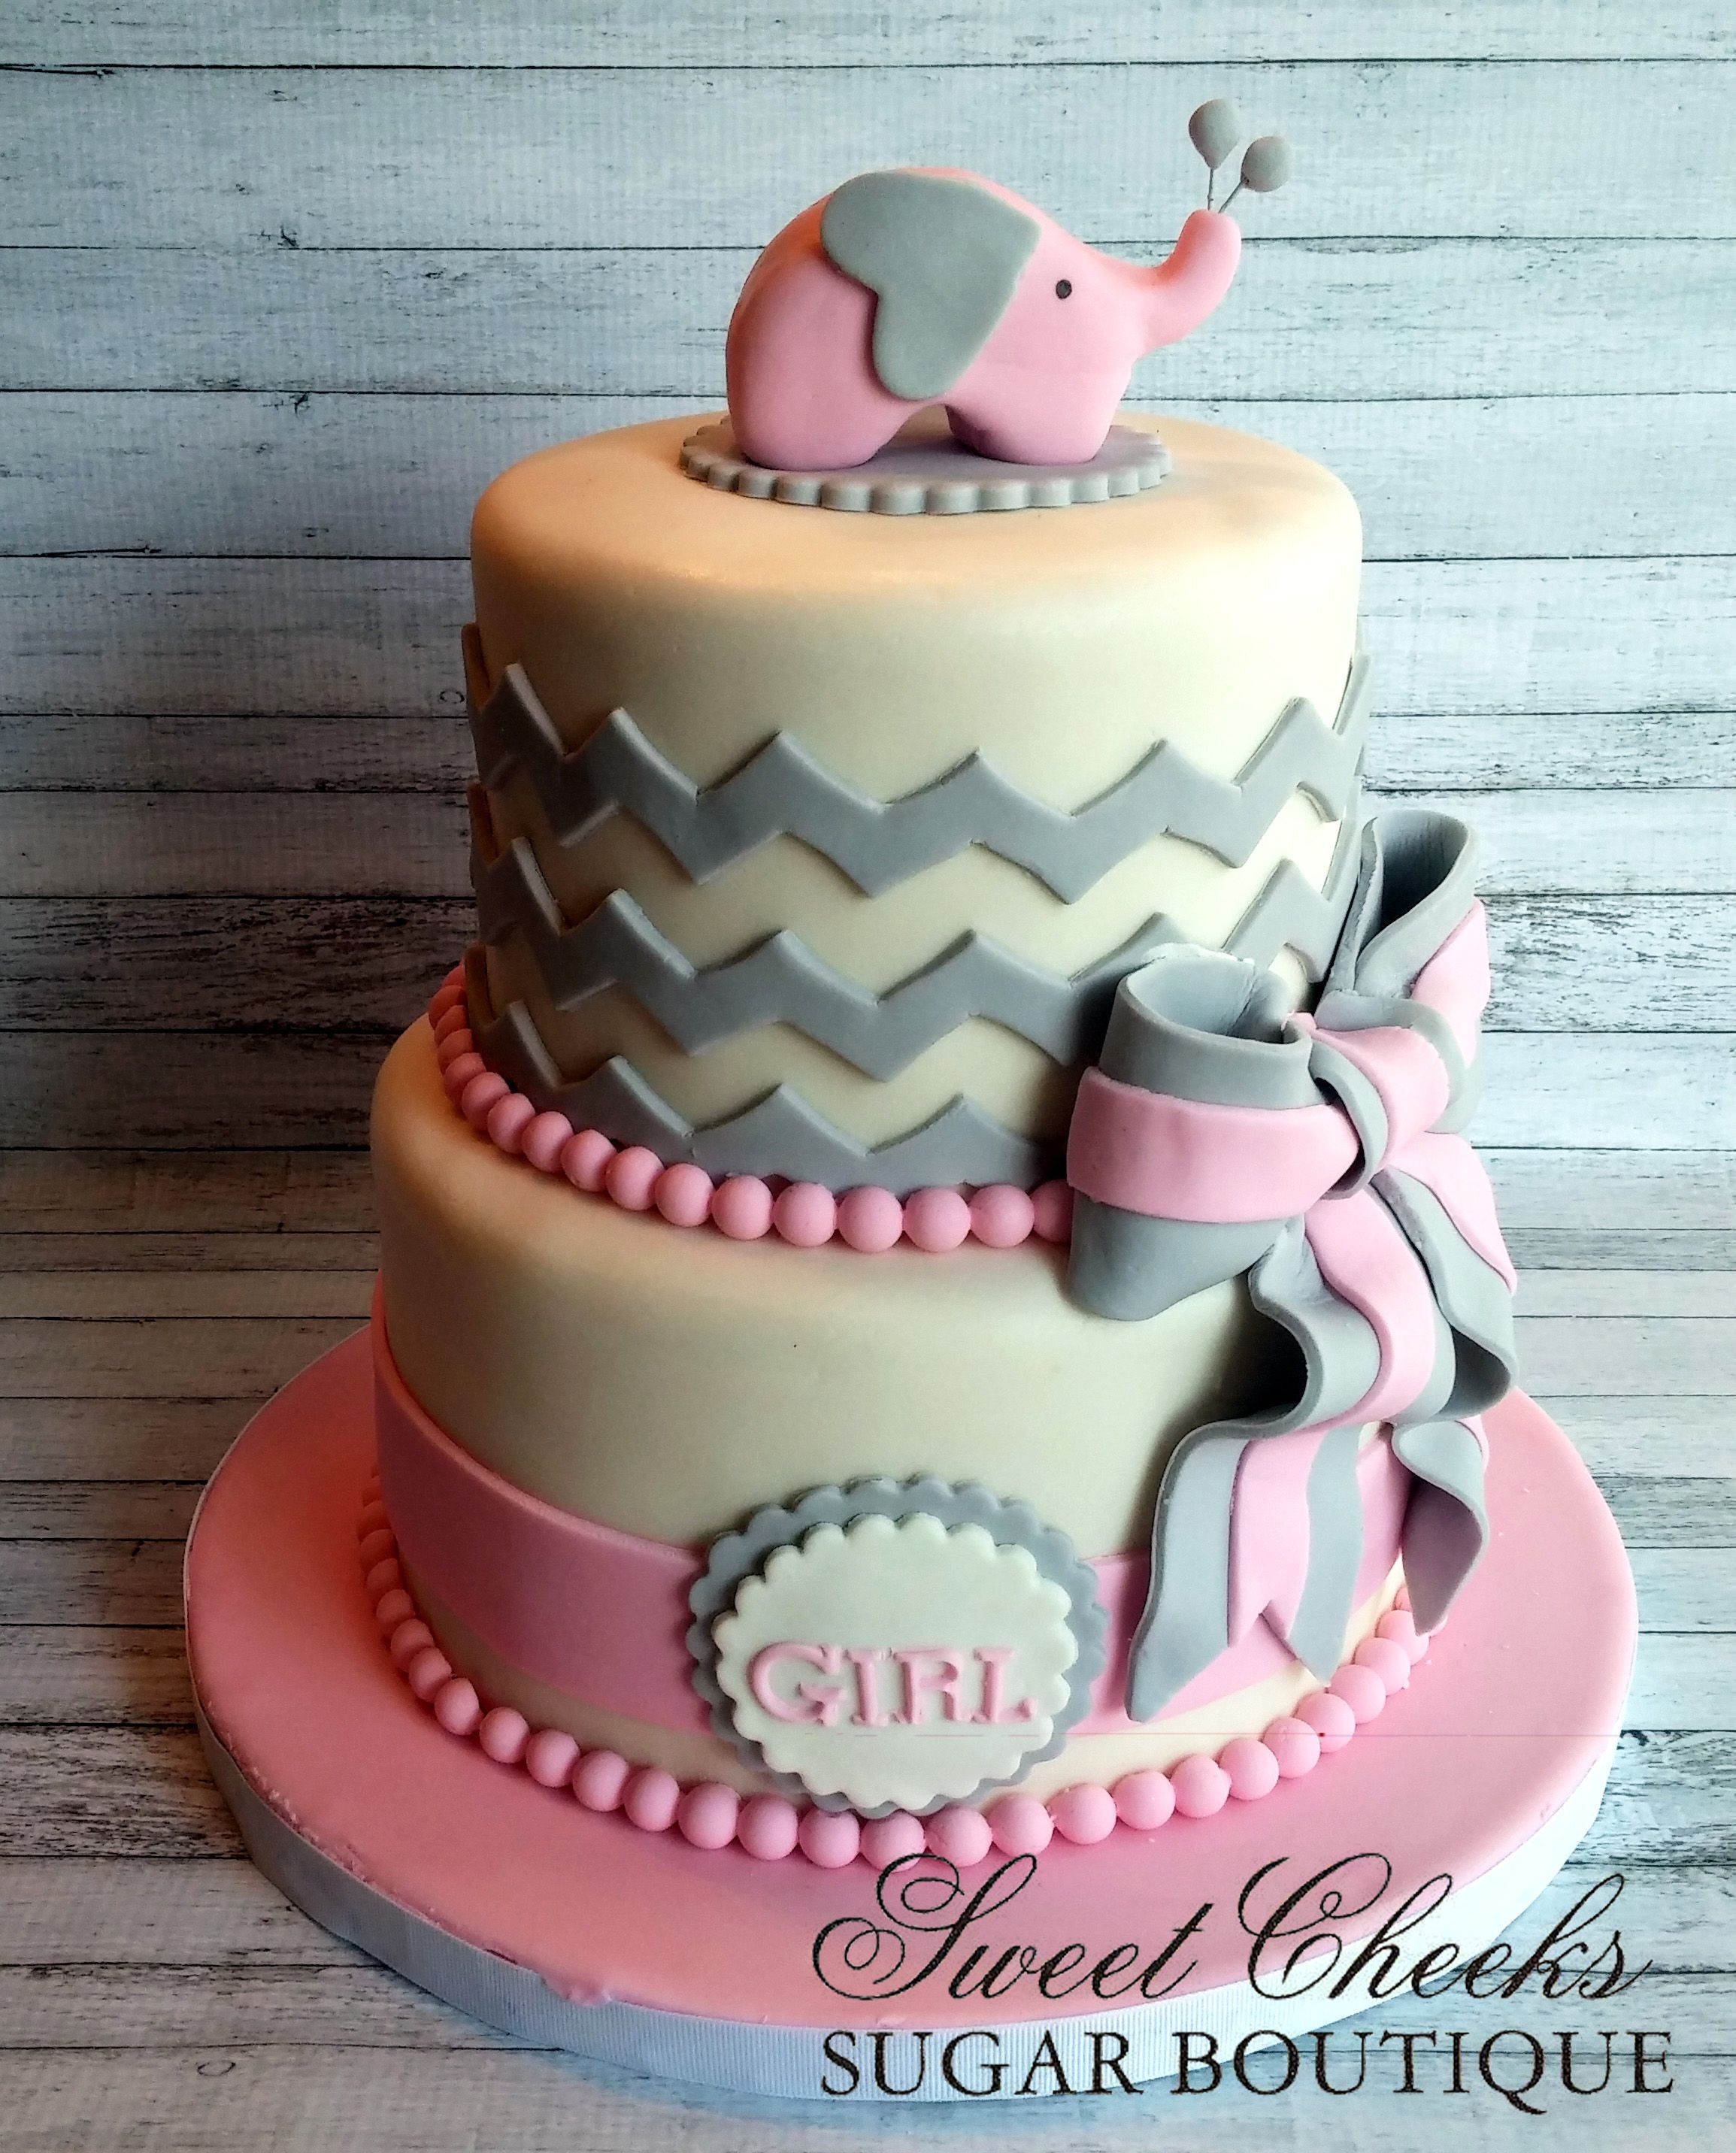 A Pretty Pink And Gray Baby Shower Cake W/ Pink Elephant Topper!